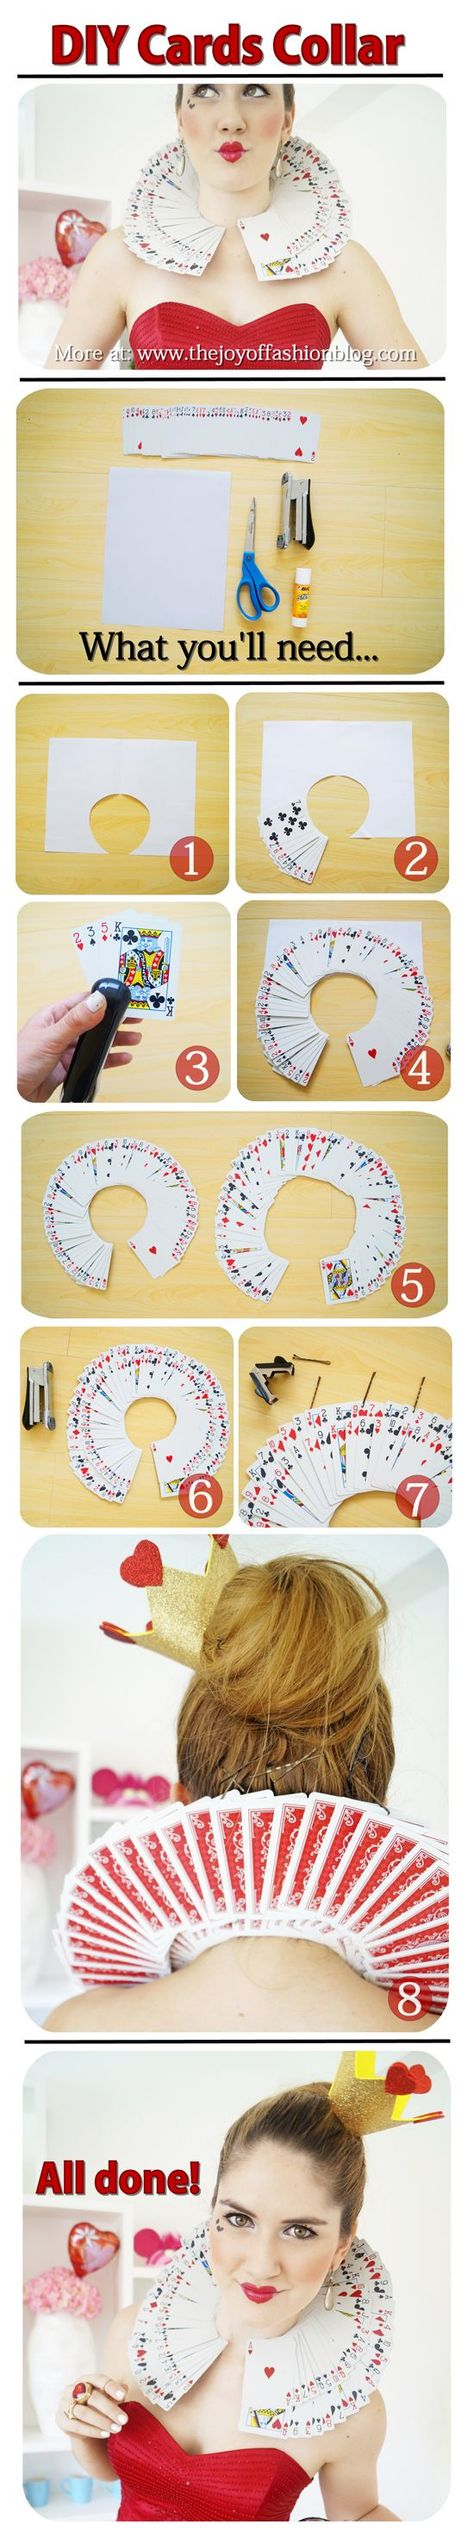 Queen of Hearts Card Collar Tutorial http://geekxgirls.com/article.php?ID=3019